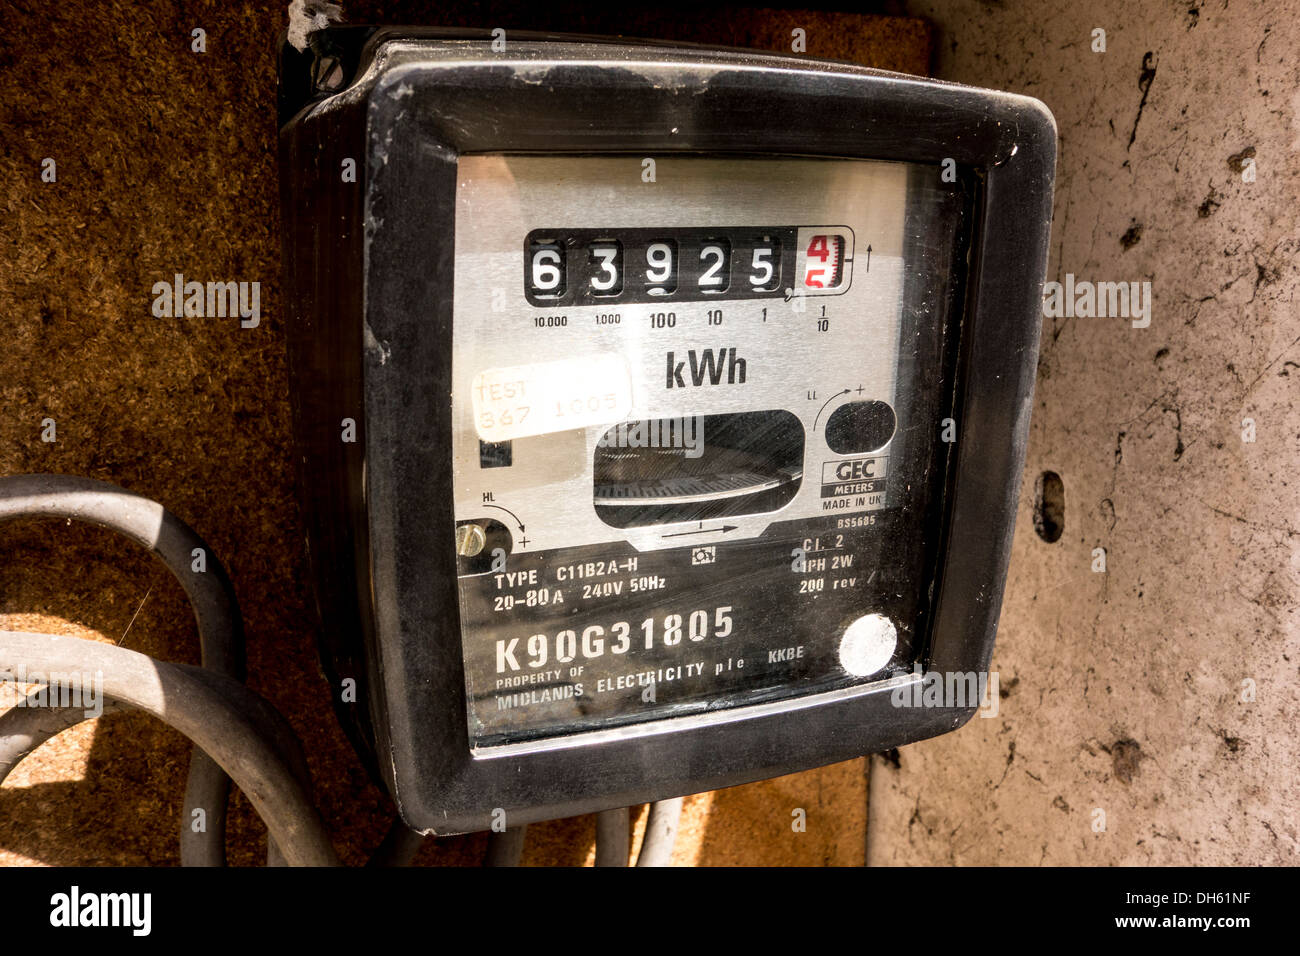 Domestic Electricity Meter Uk Stock Photos Amp Domestic